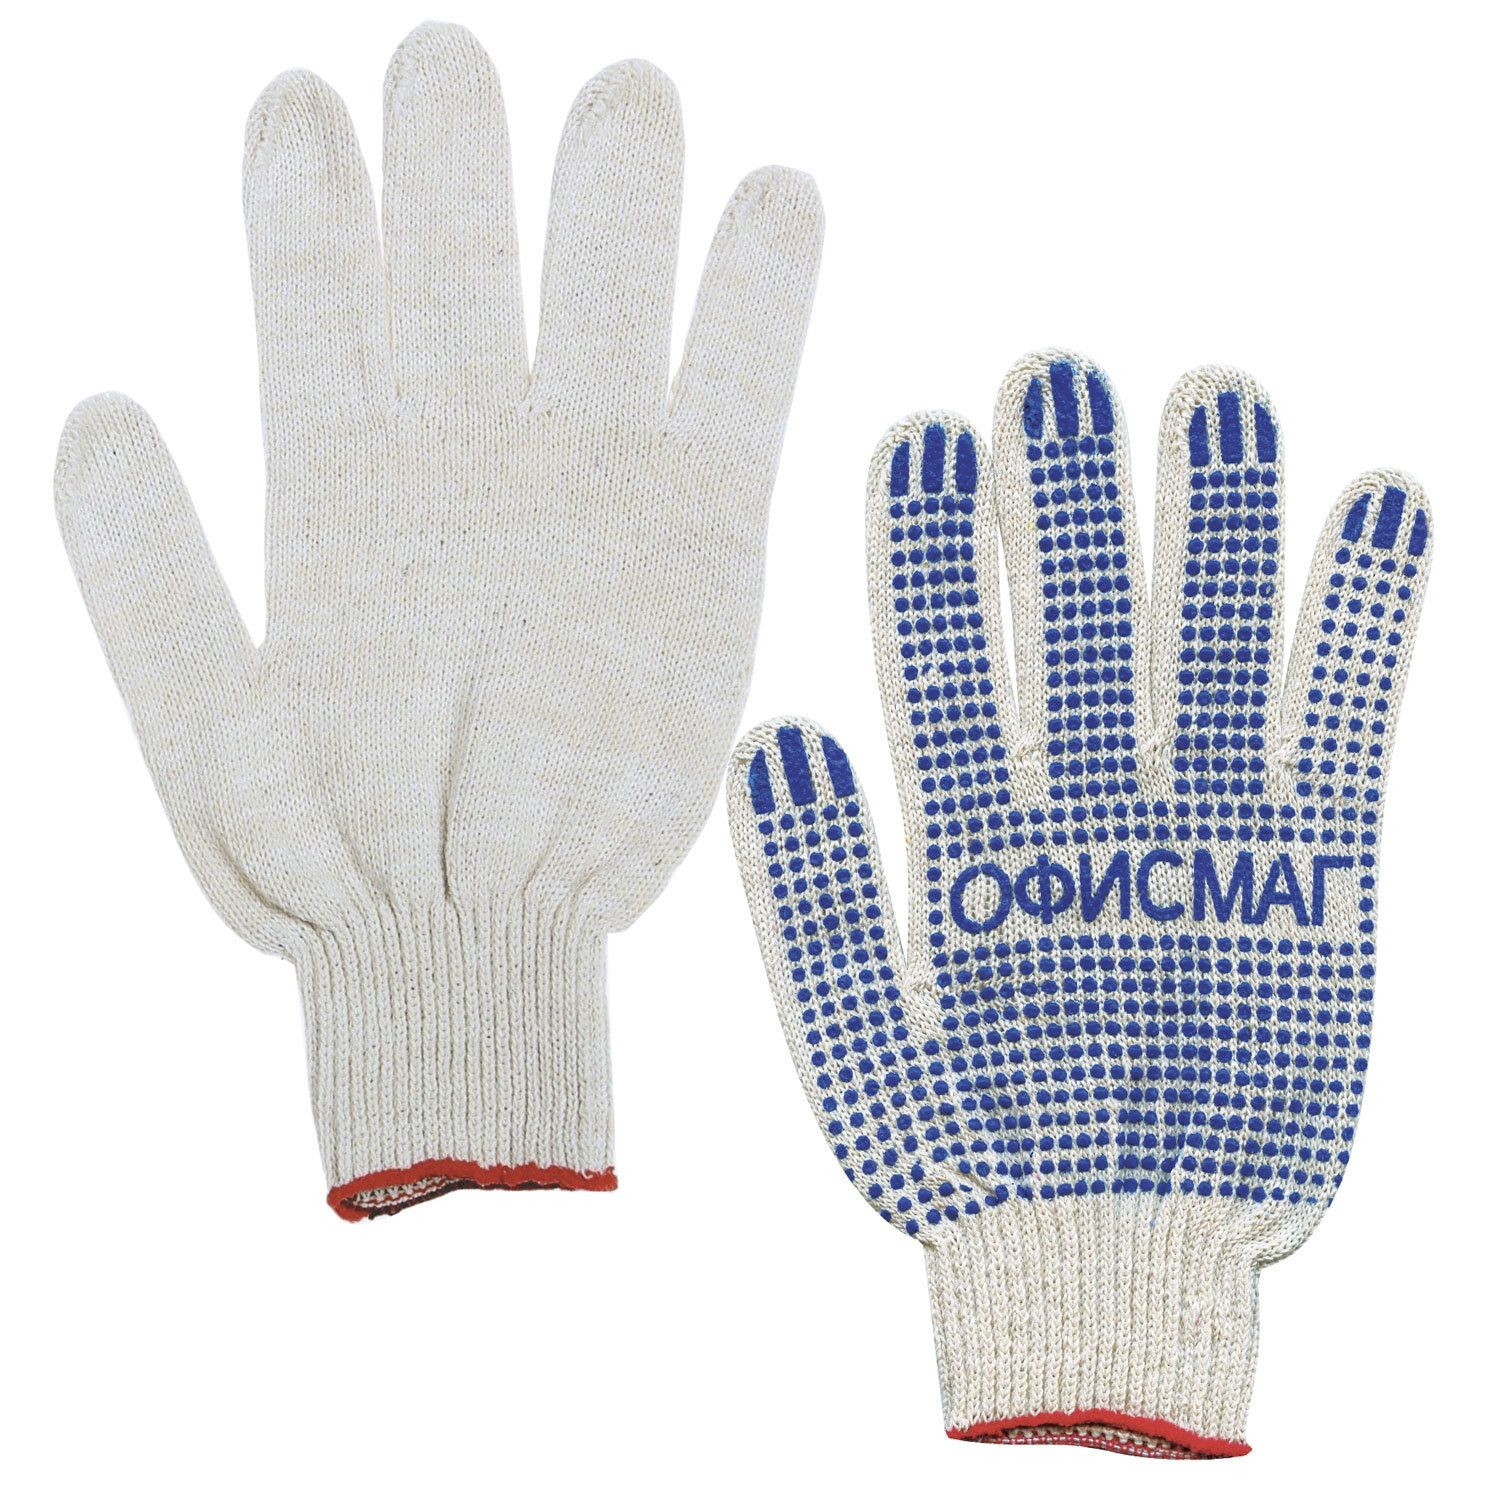 OFFICEMAG / Cotton gloves LUX, SET of 5 PAIRS, 10 class, 40-42 g, 116 tex, PVC dot, WHITE